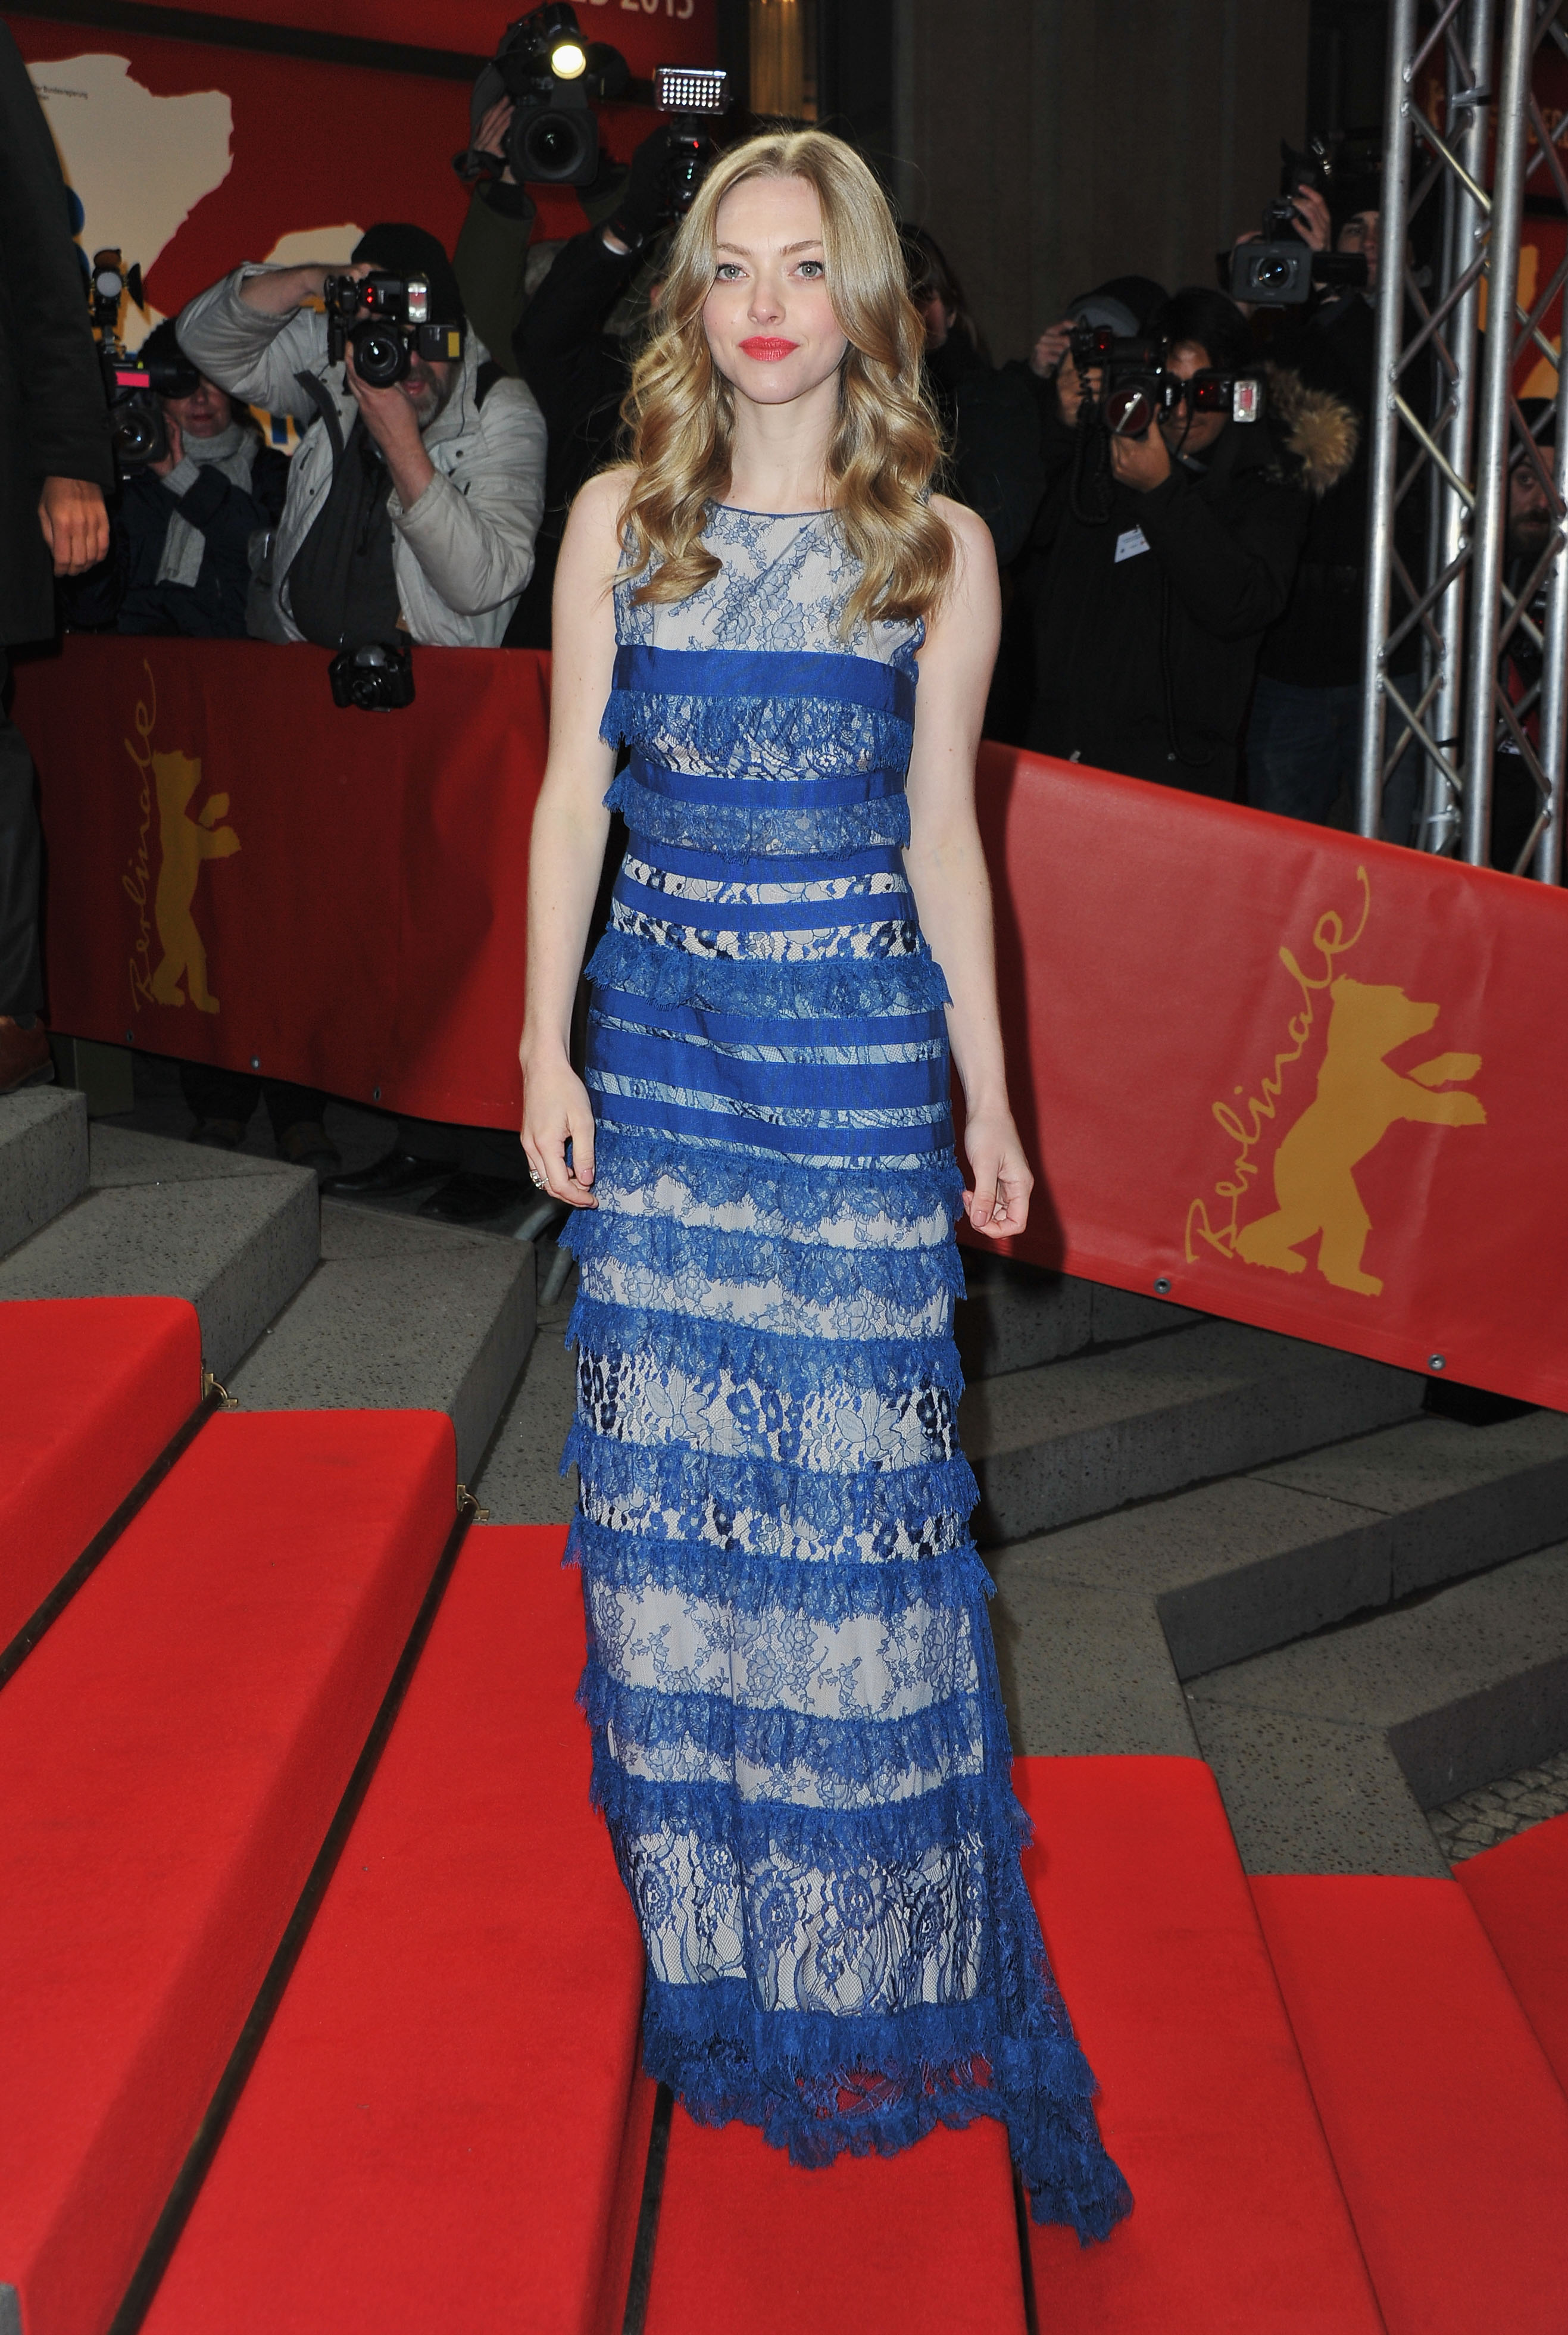 On Saturday, Amanda Seyfried slipped into an Elie Saab gown to hit the red carpet for her Lovelace premiere at the Berlin Film Festival.